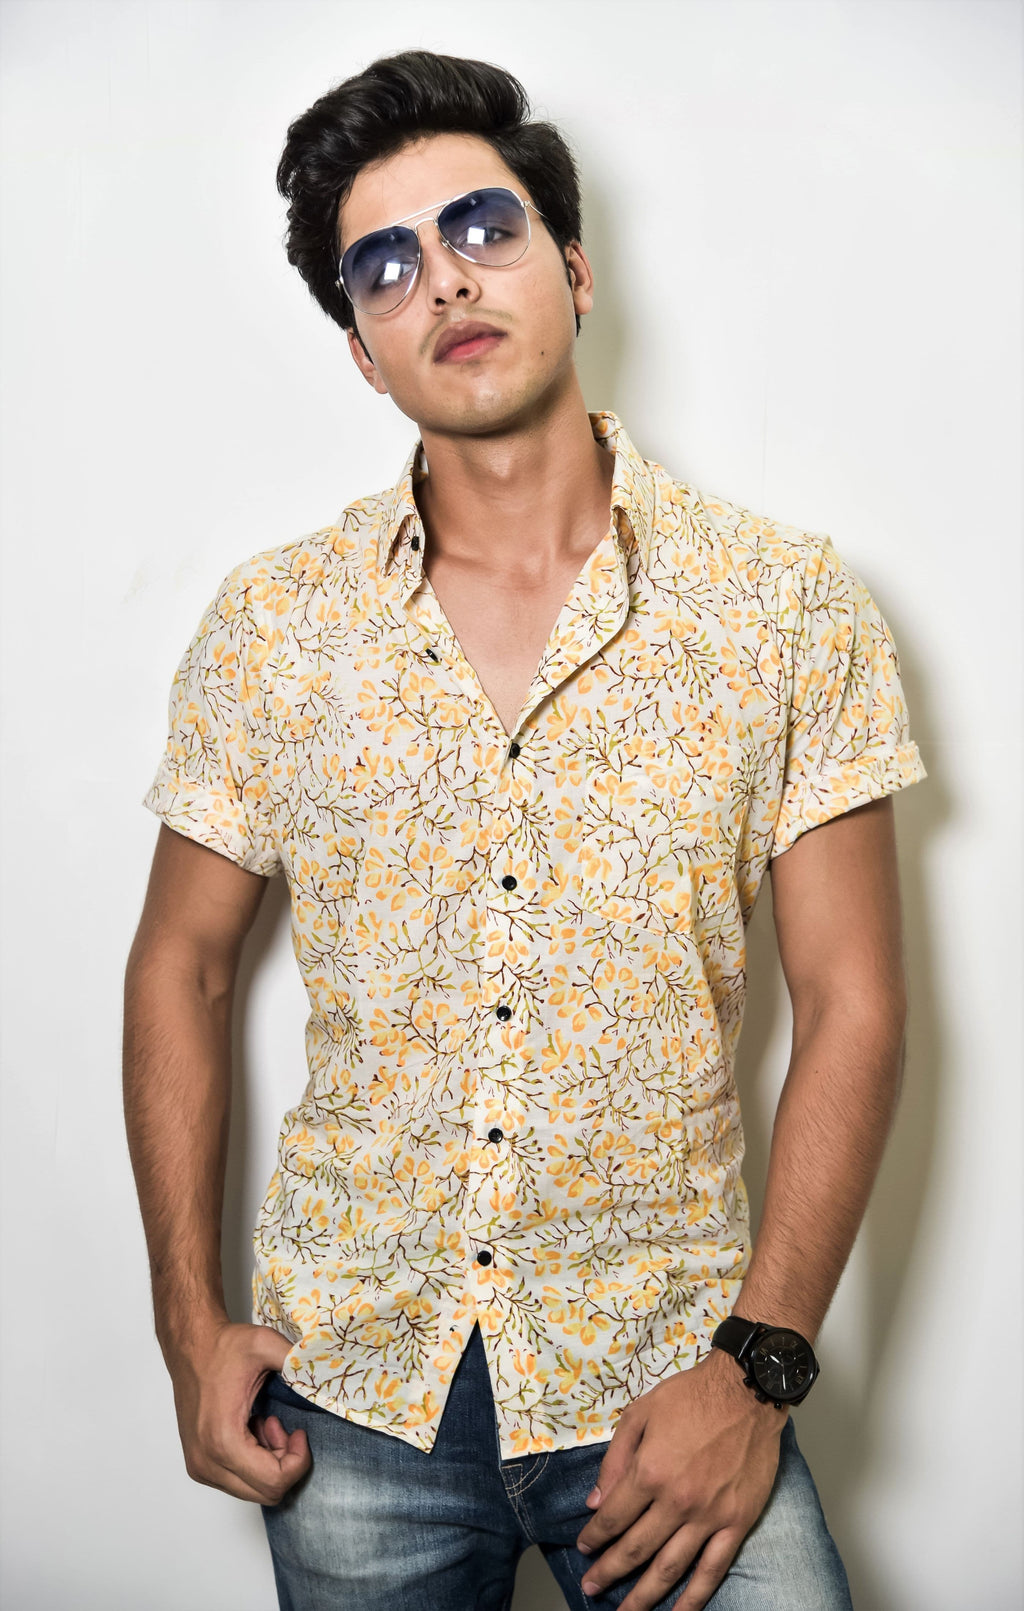 Light yellow and white printed shirt by Kaldern clothing designed for a grandeur look.